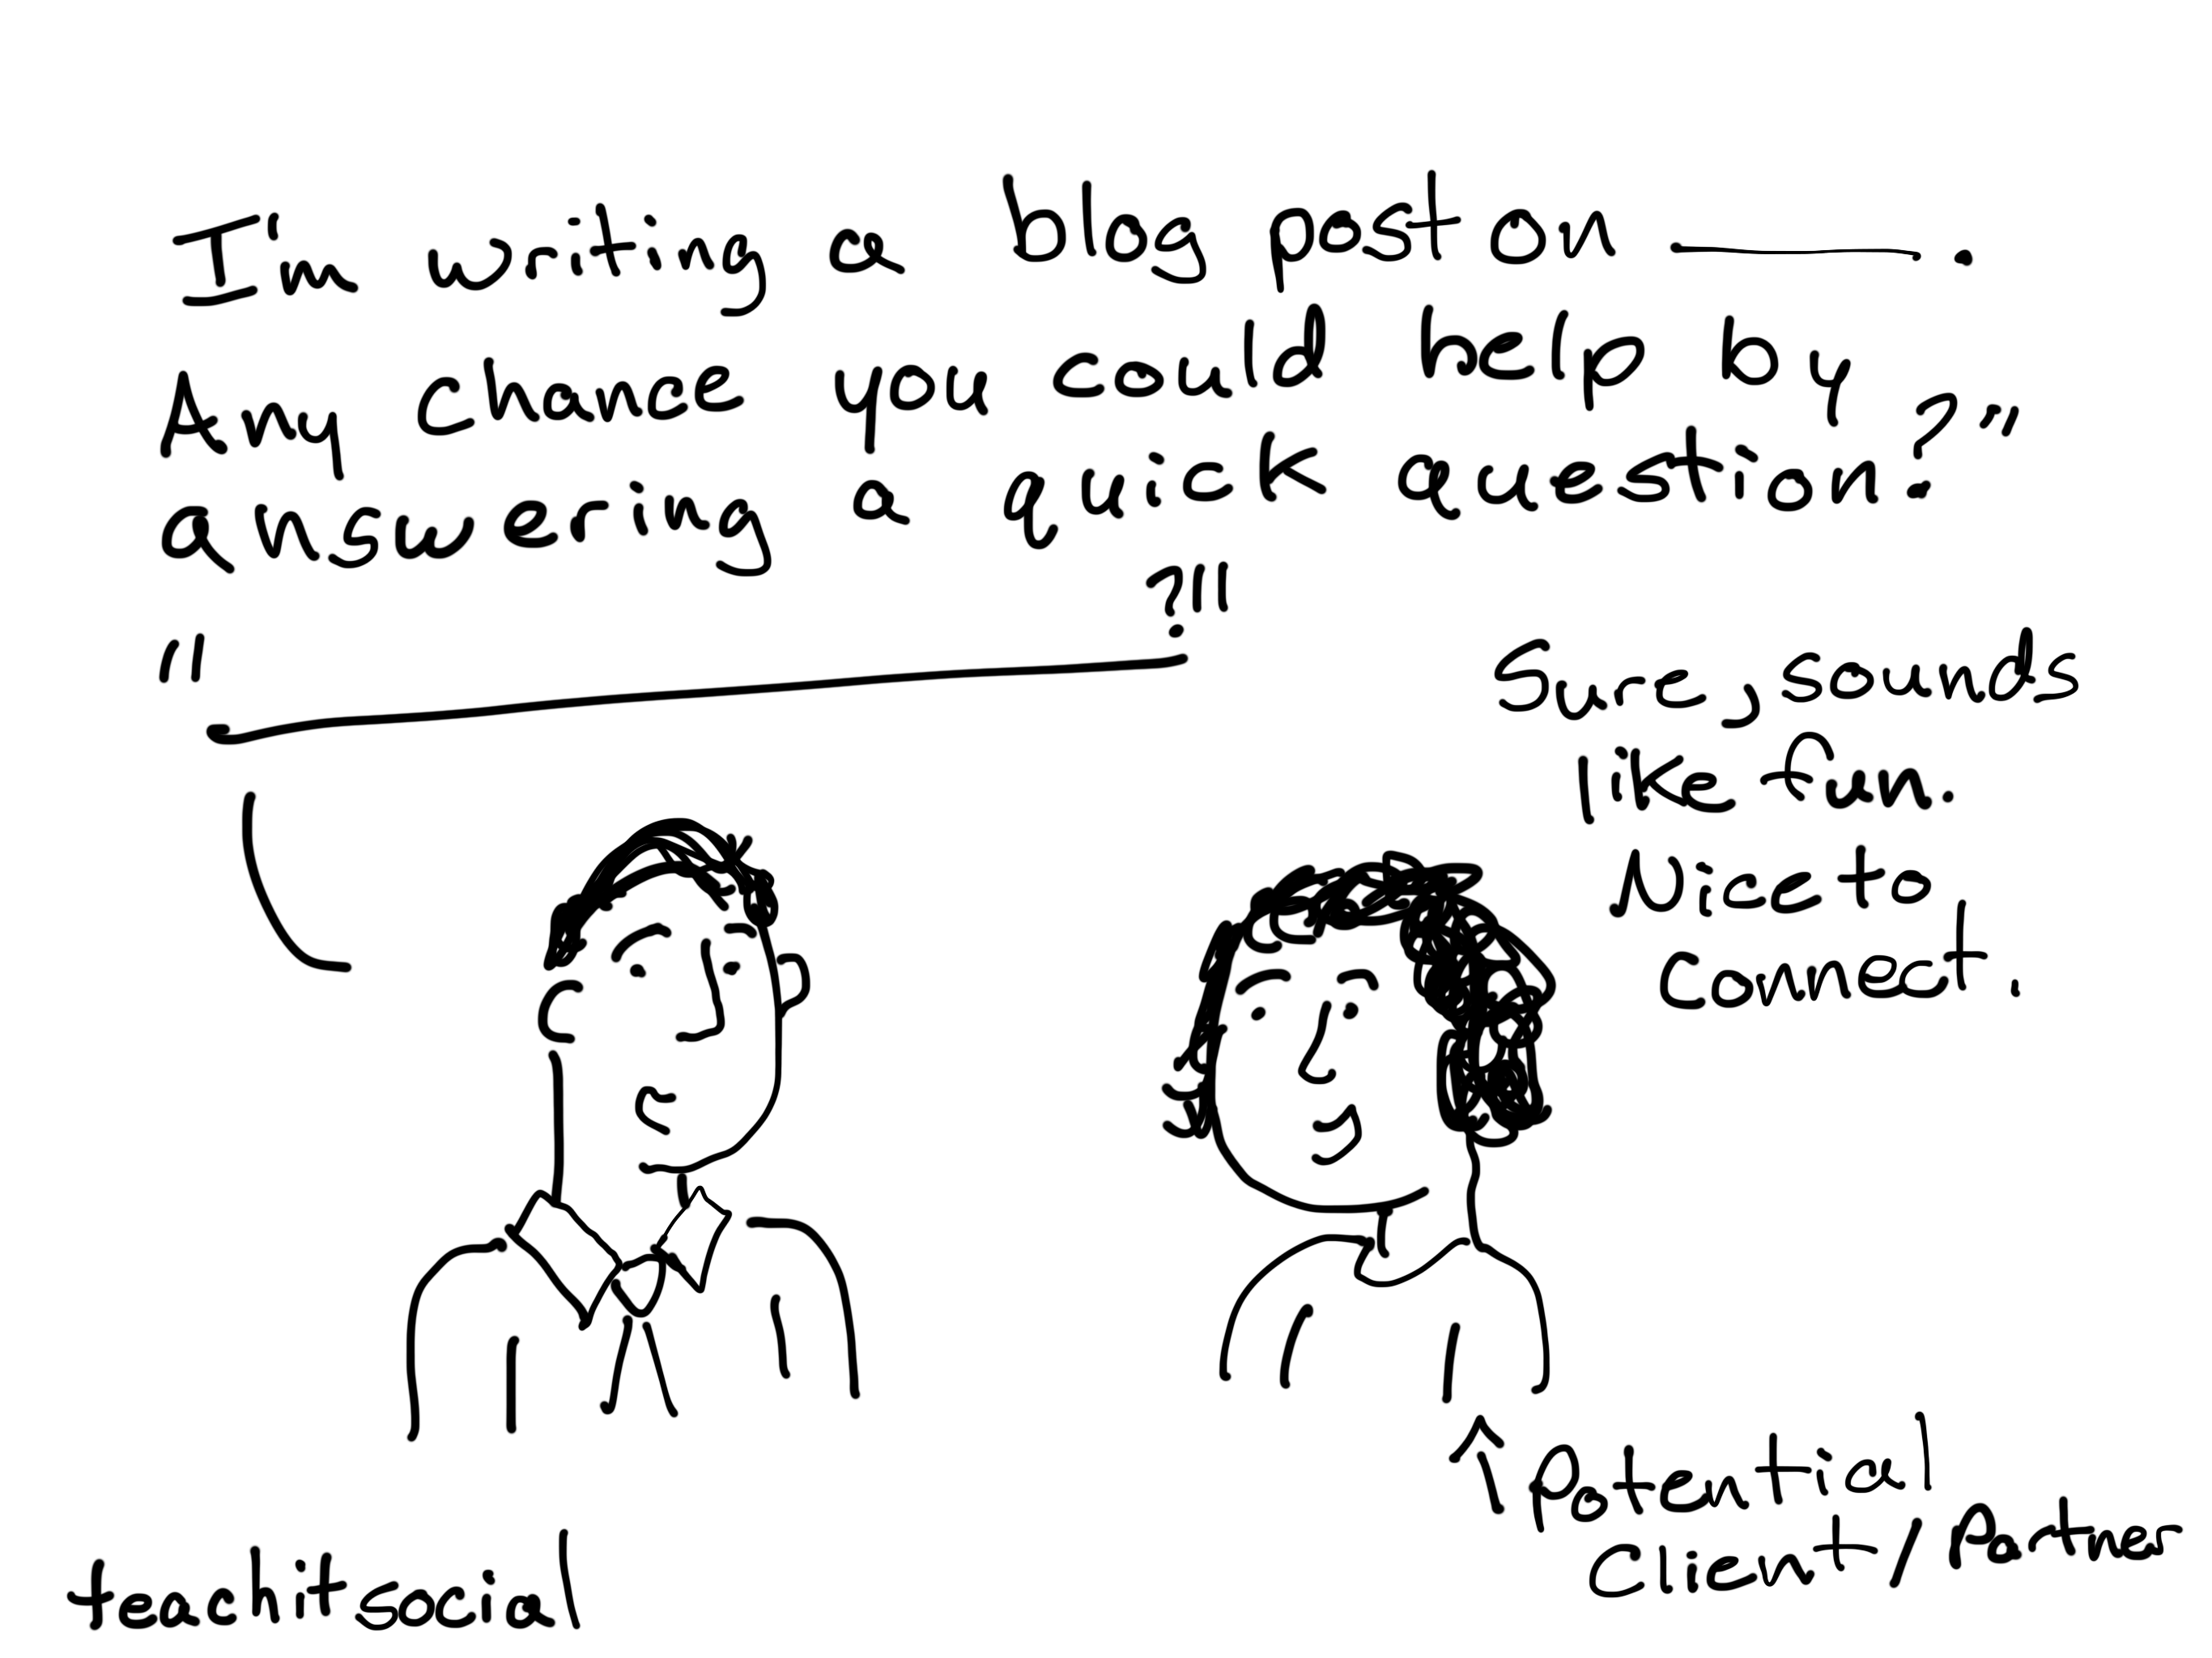 I'm writing a blog post on blank. Any chance you could help by answering a quick question. Sure, sounds like fun. Says potential client or partner. Nice to connect.